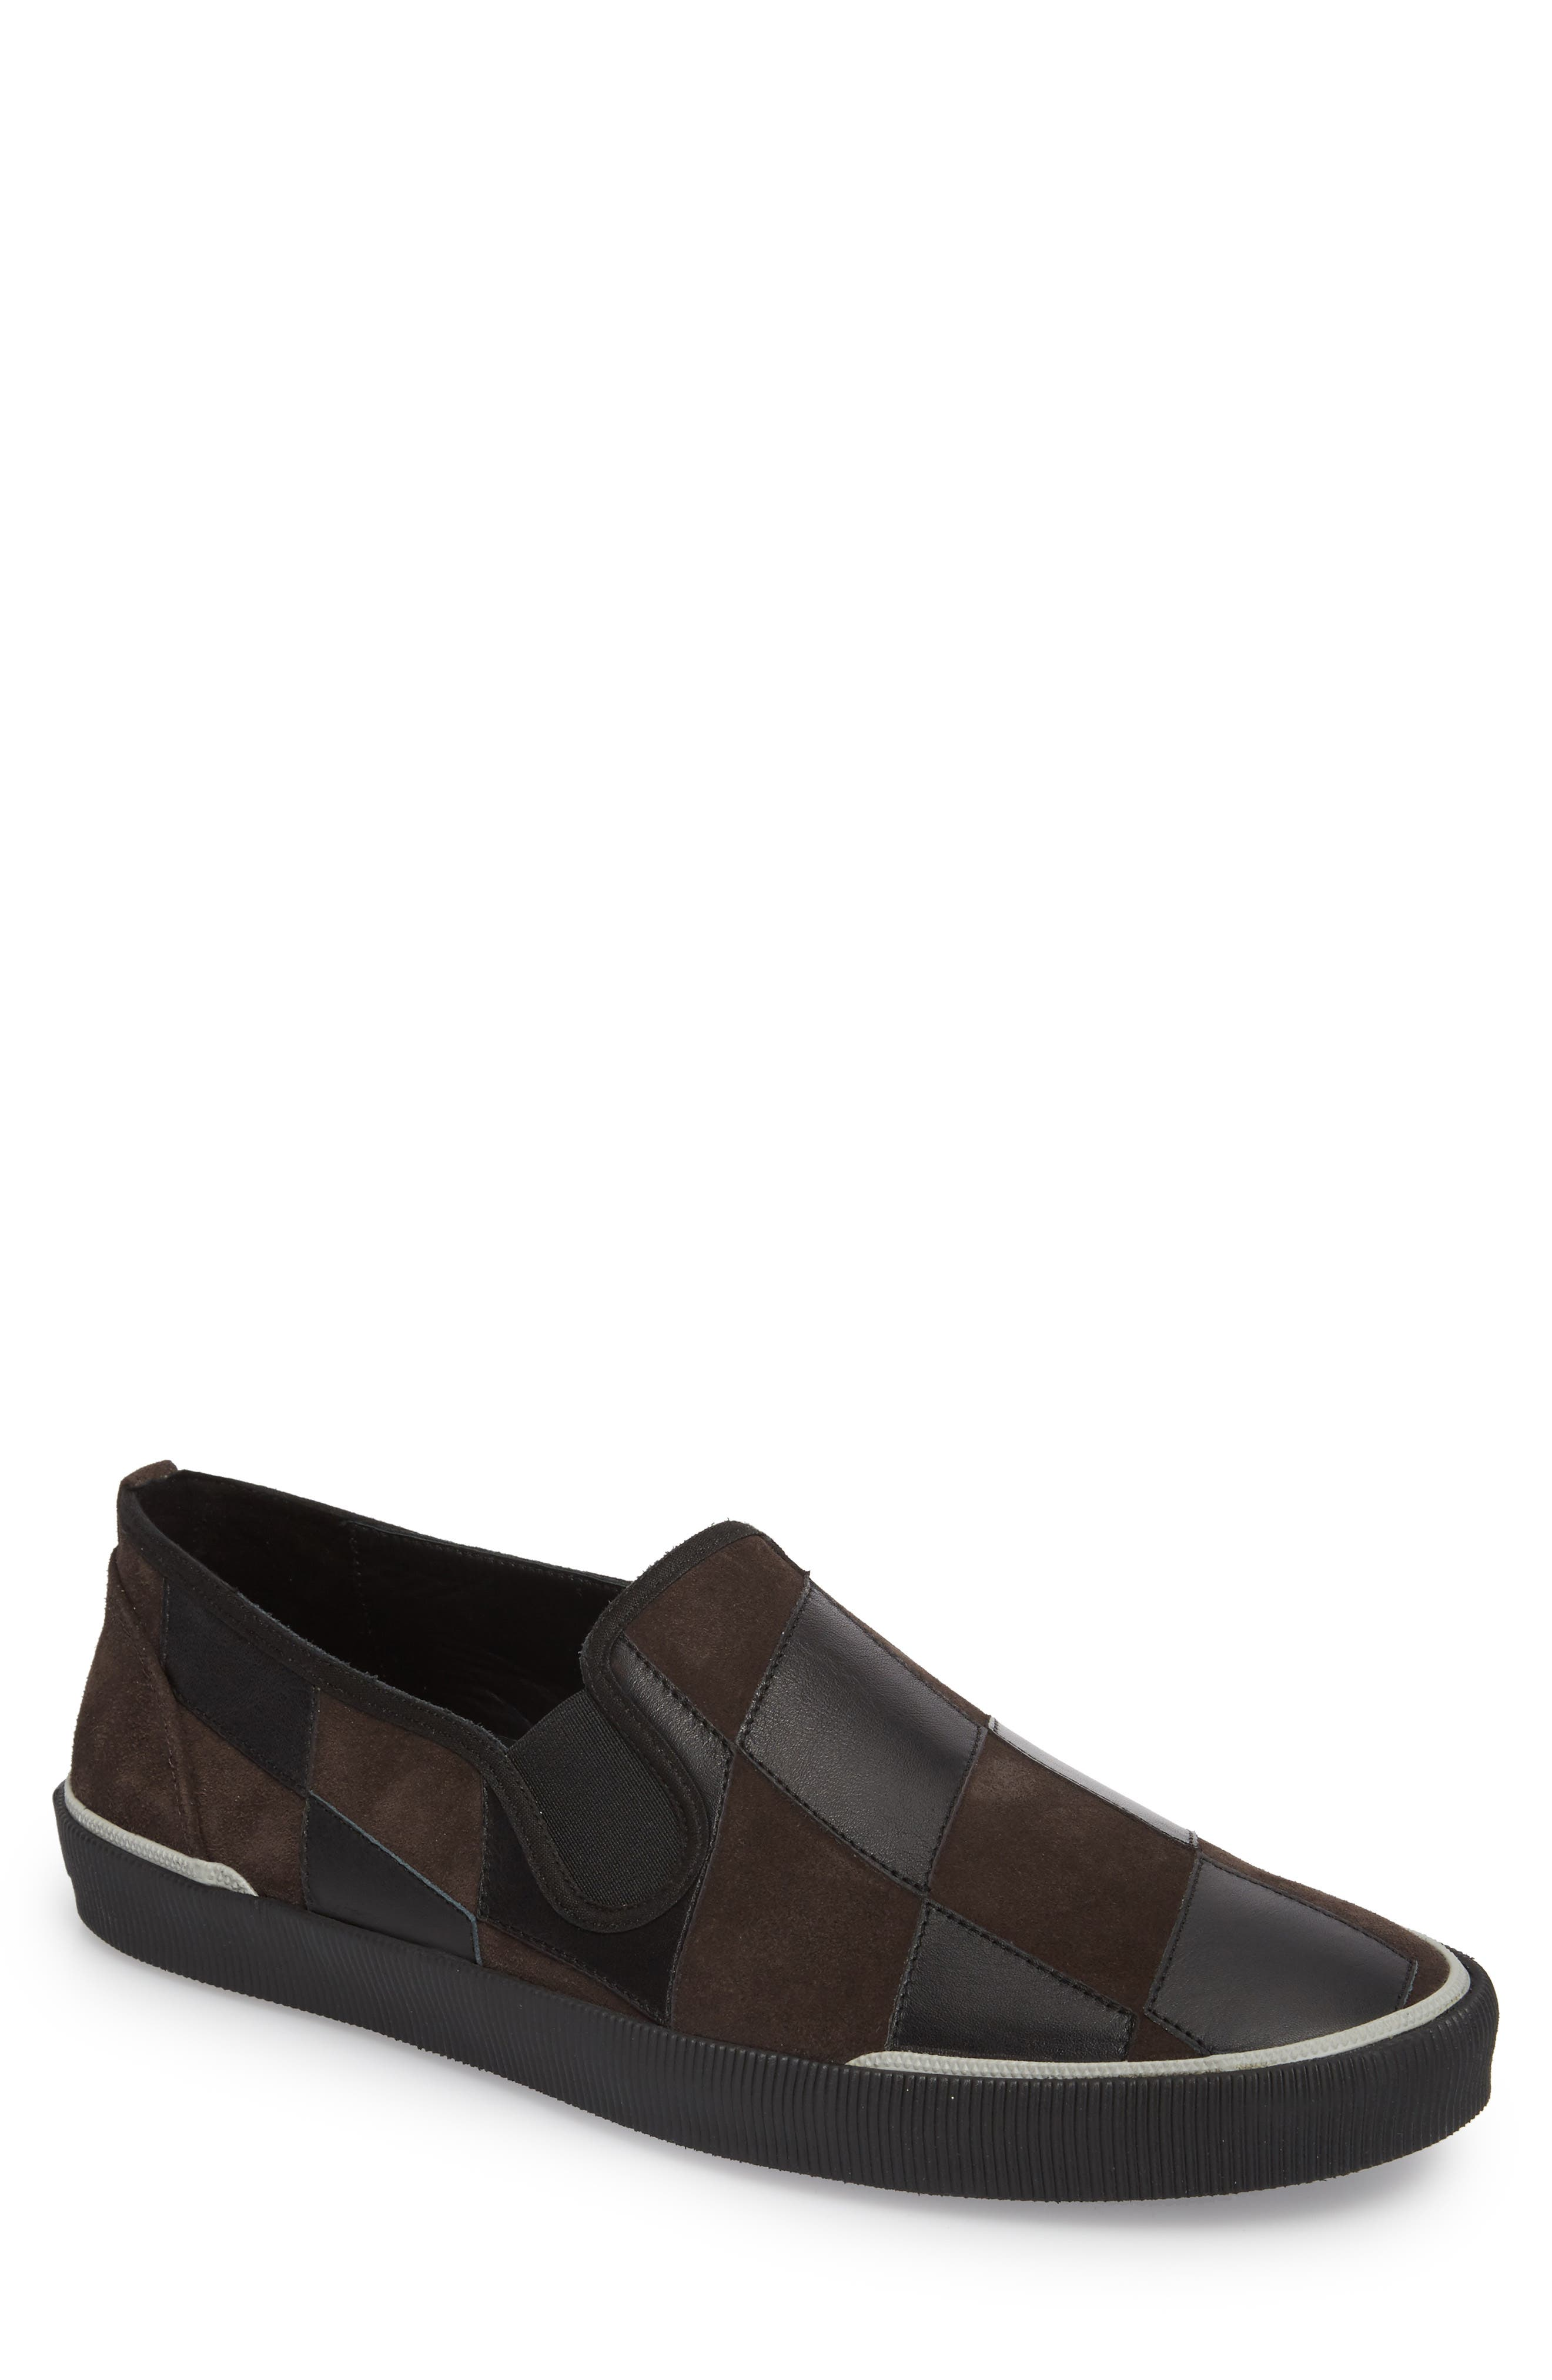 Diamond Patchwork Slip-On Sneaker,                             Main thumbnail 1, color,                             Taupe/ Black Leather/ Suede